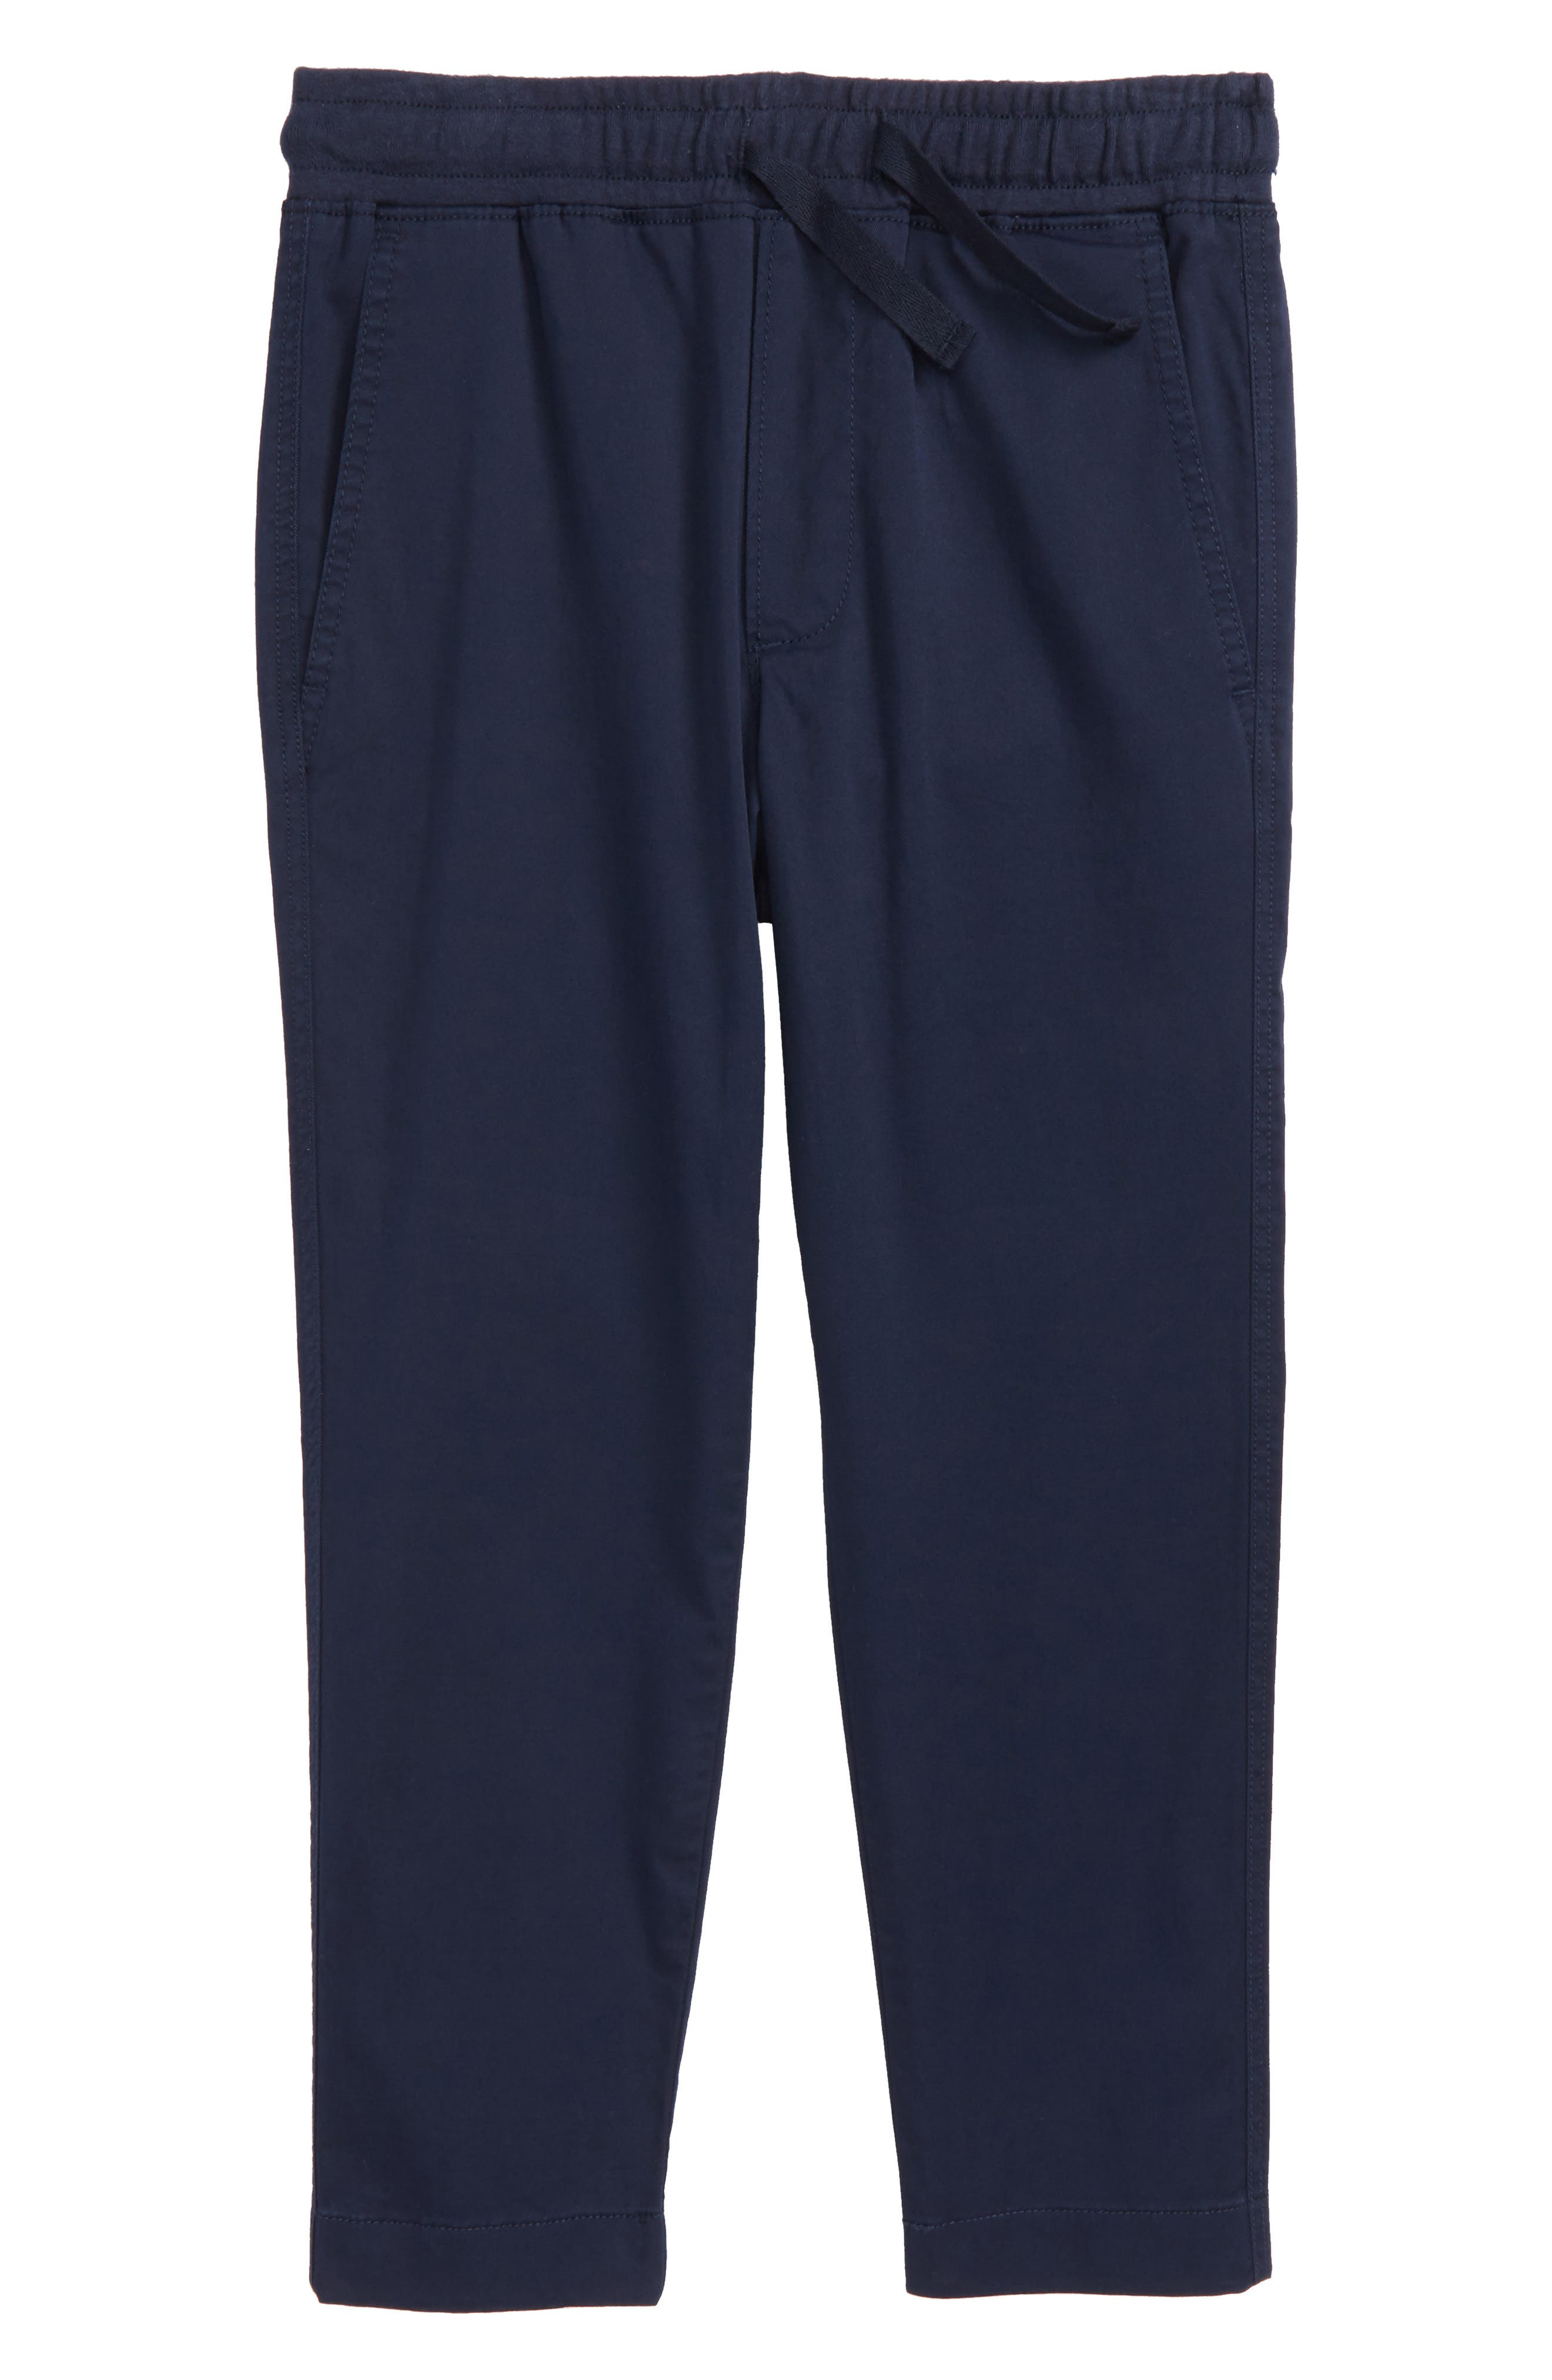 crewcuts by J.Crew Pull On Pants (Toddler Boys, Little Boys & Big Boys)